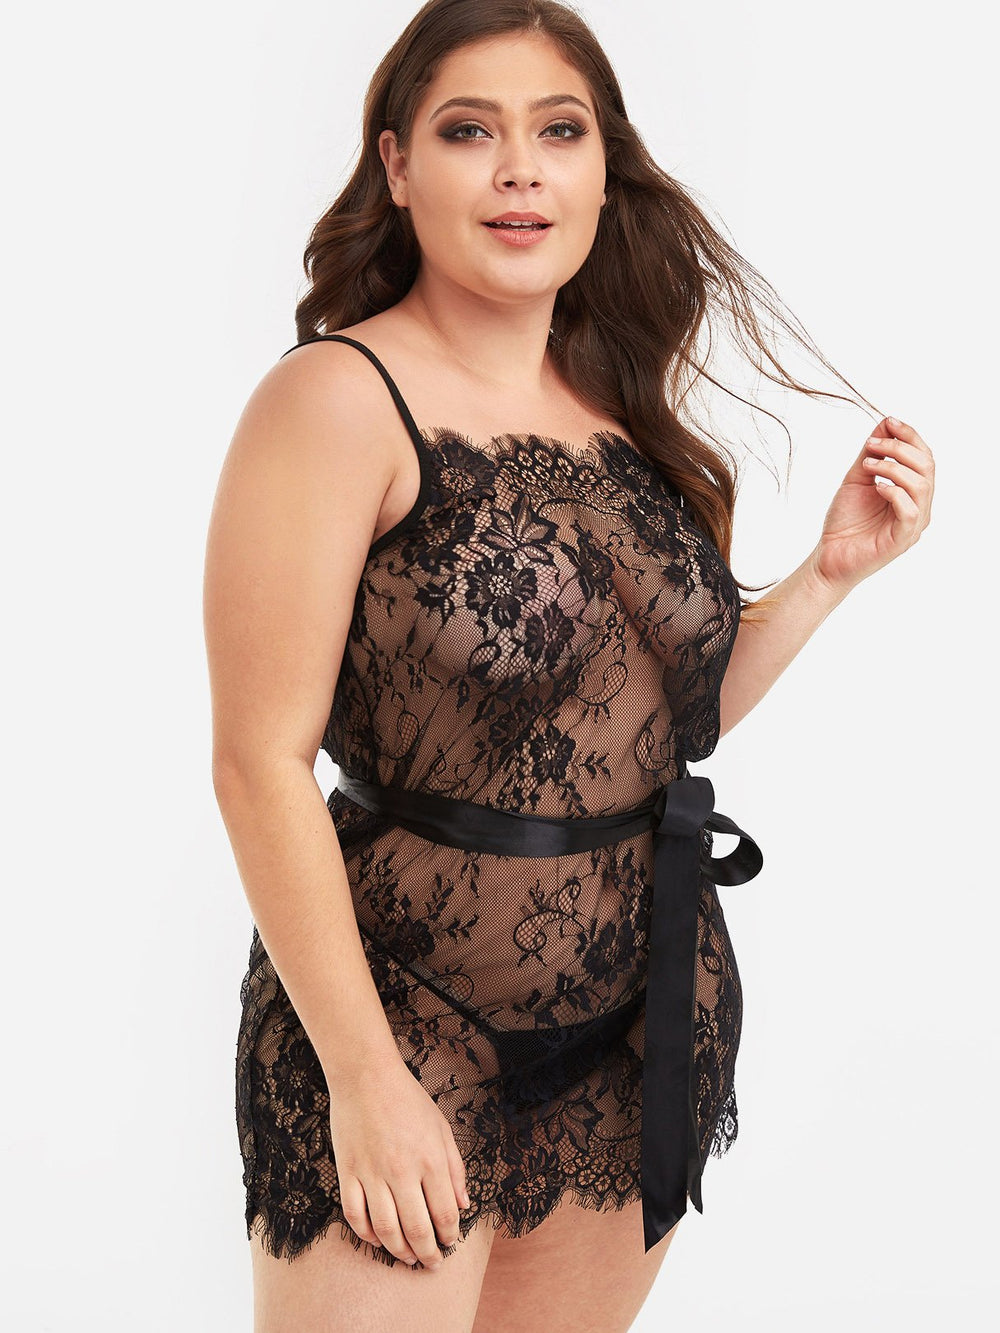 Plus Size Intimate Wear